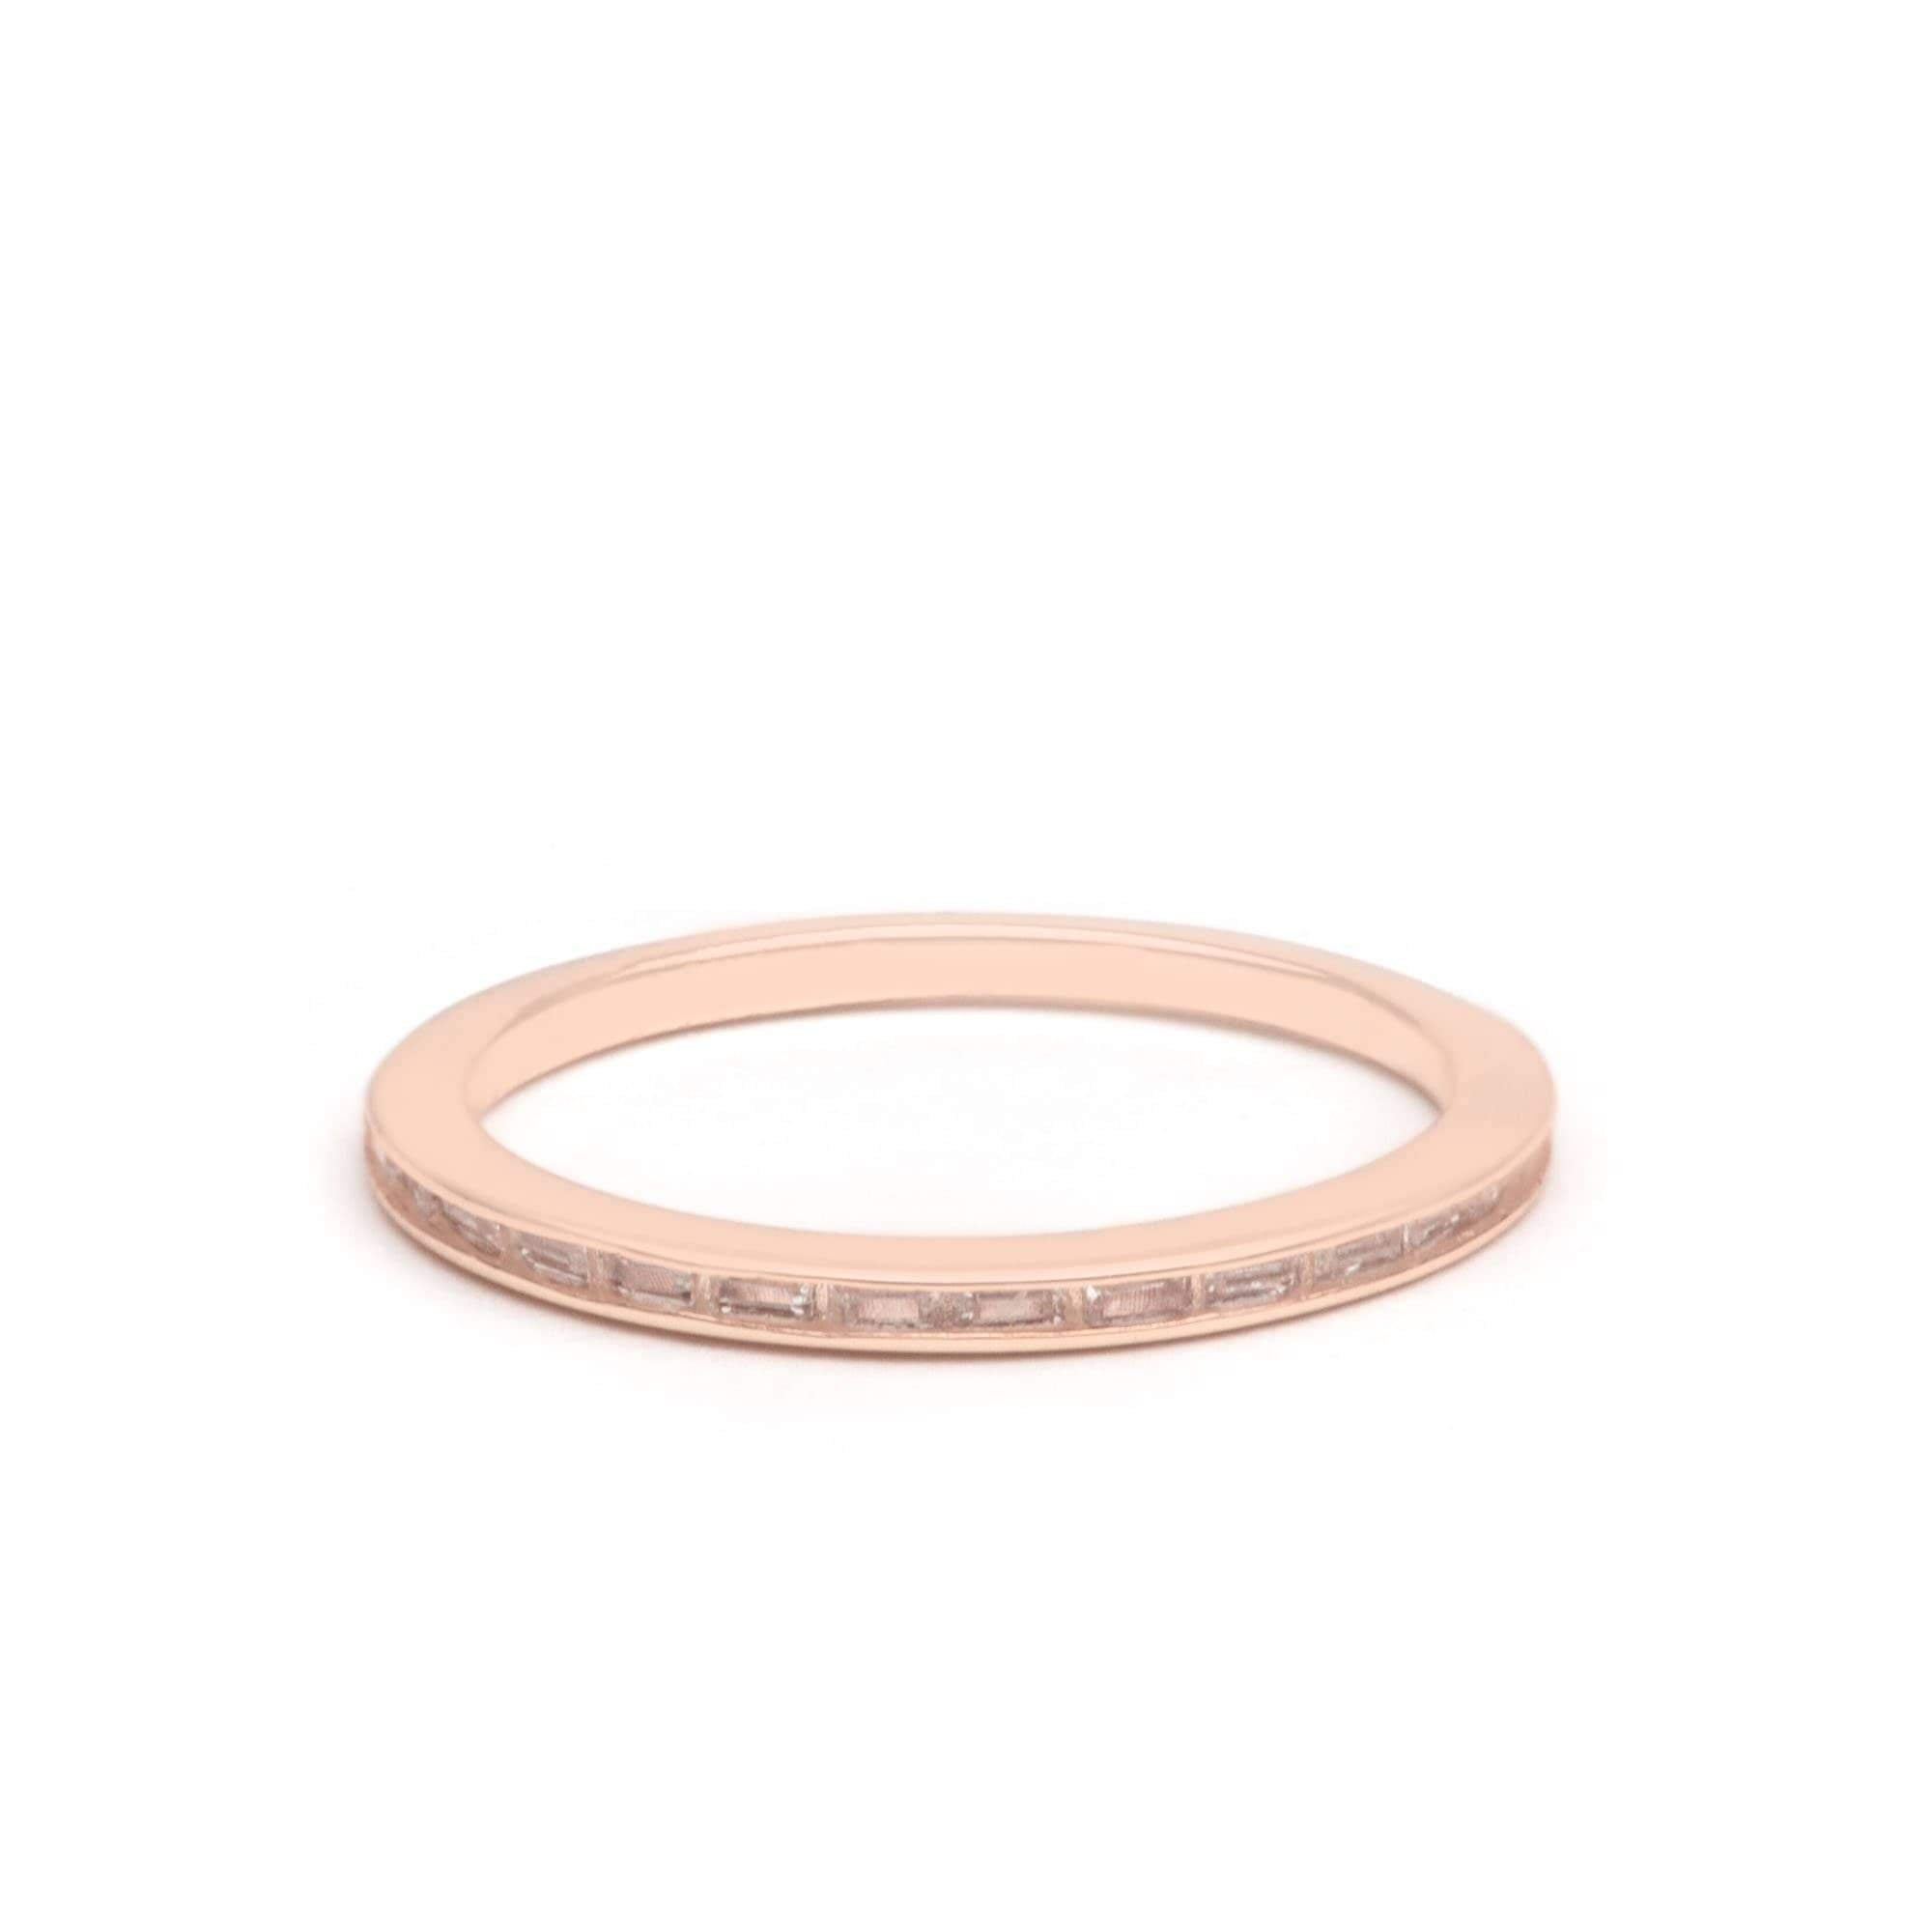 Jeanne's Jewels Rings Rose Gold / 5 Vivian